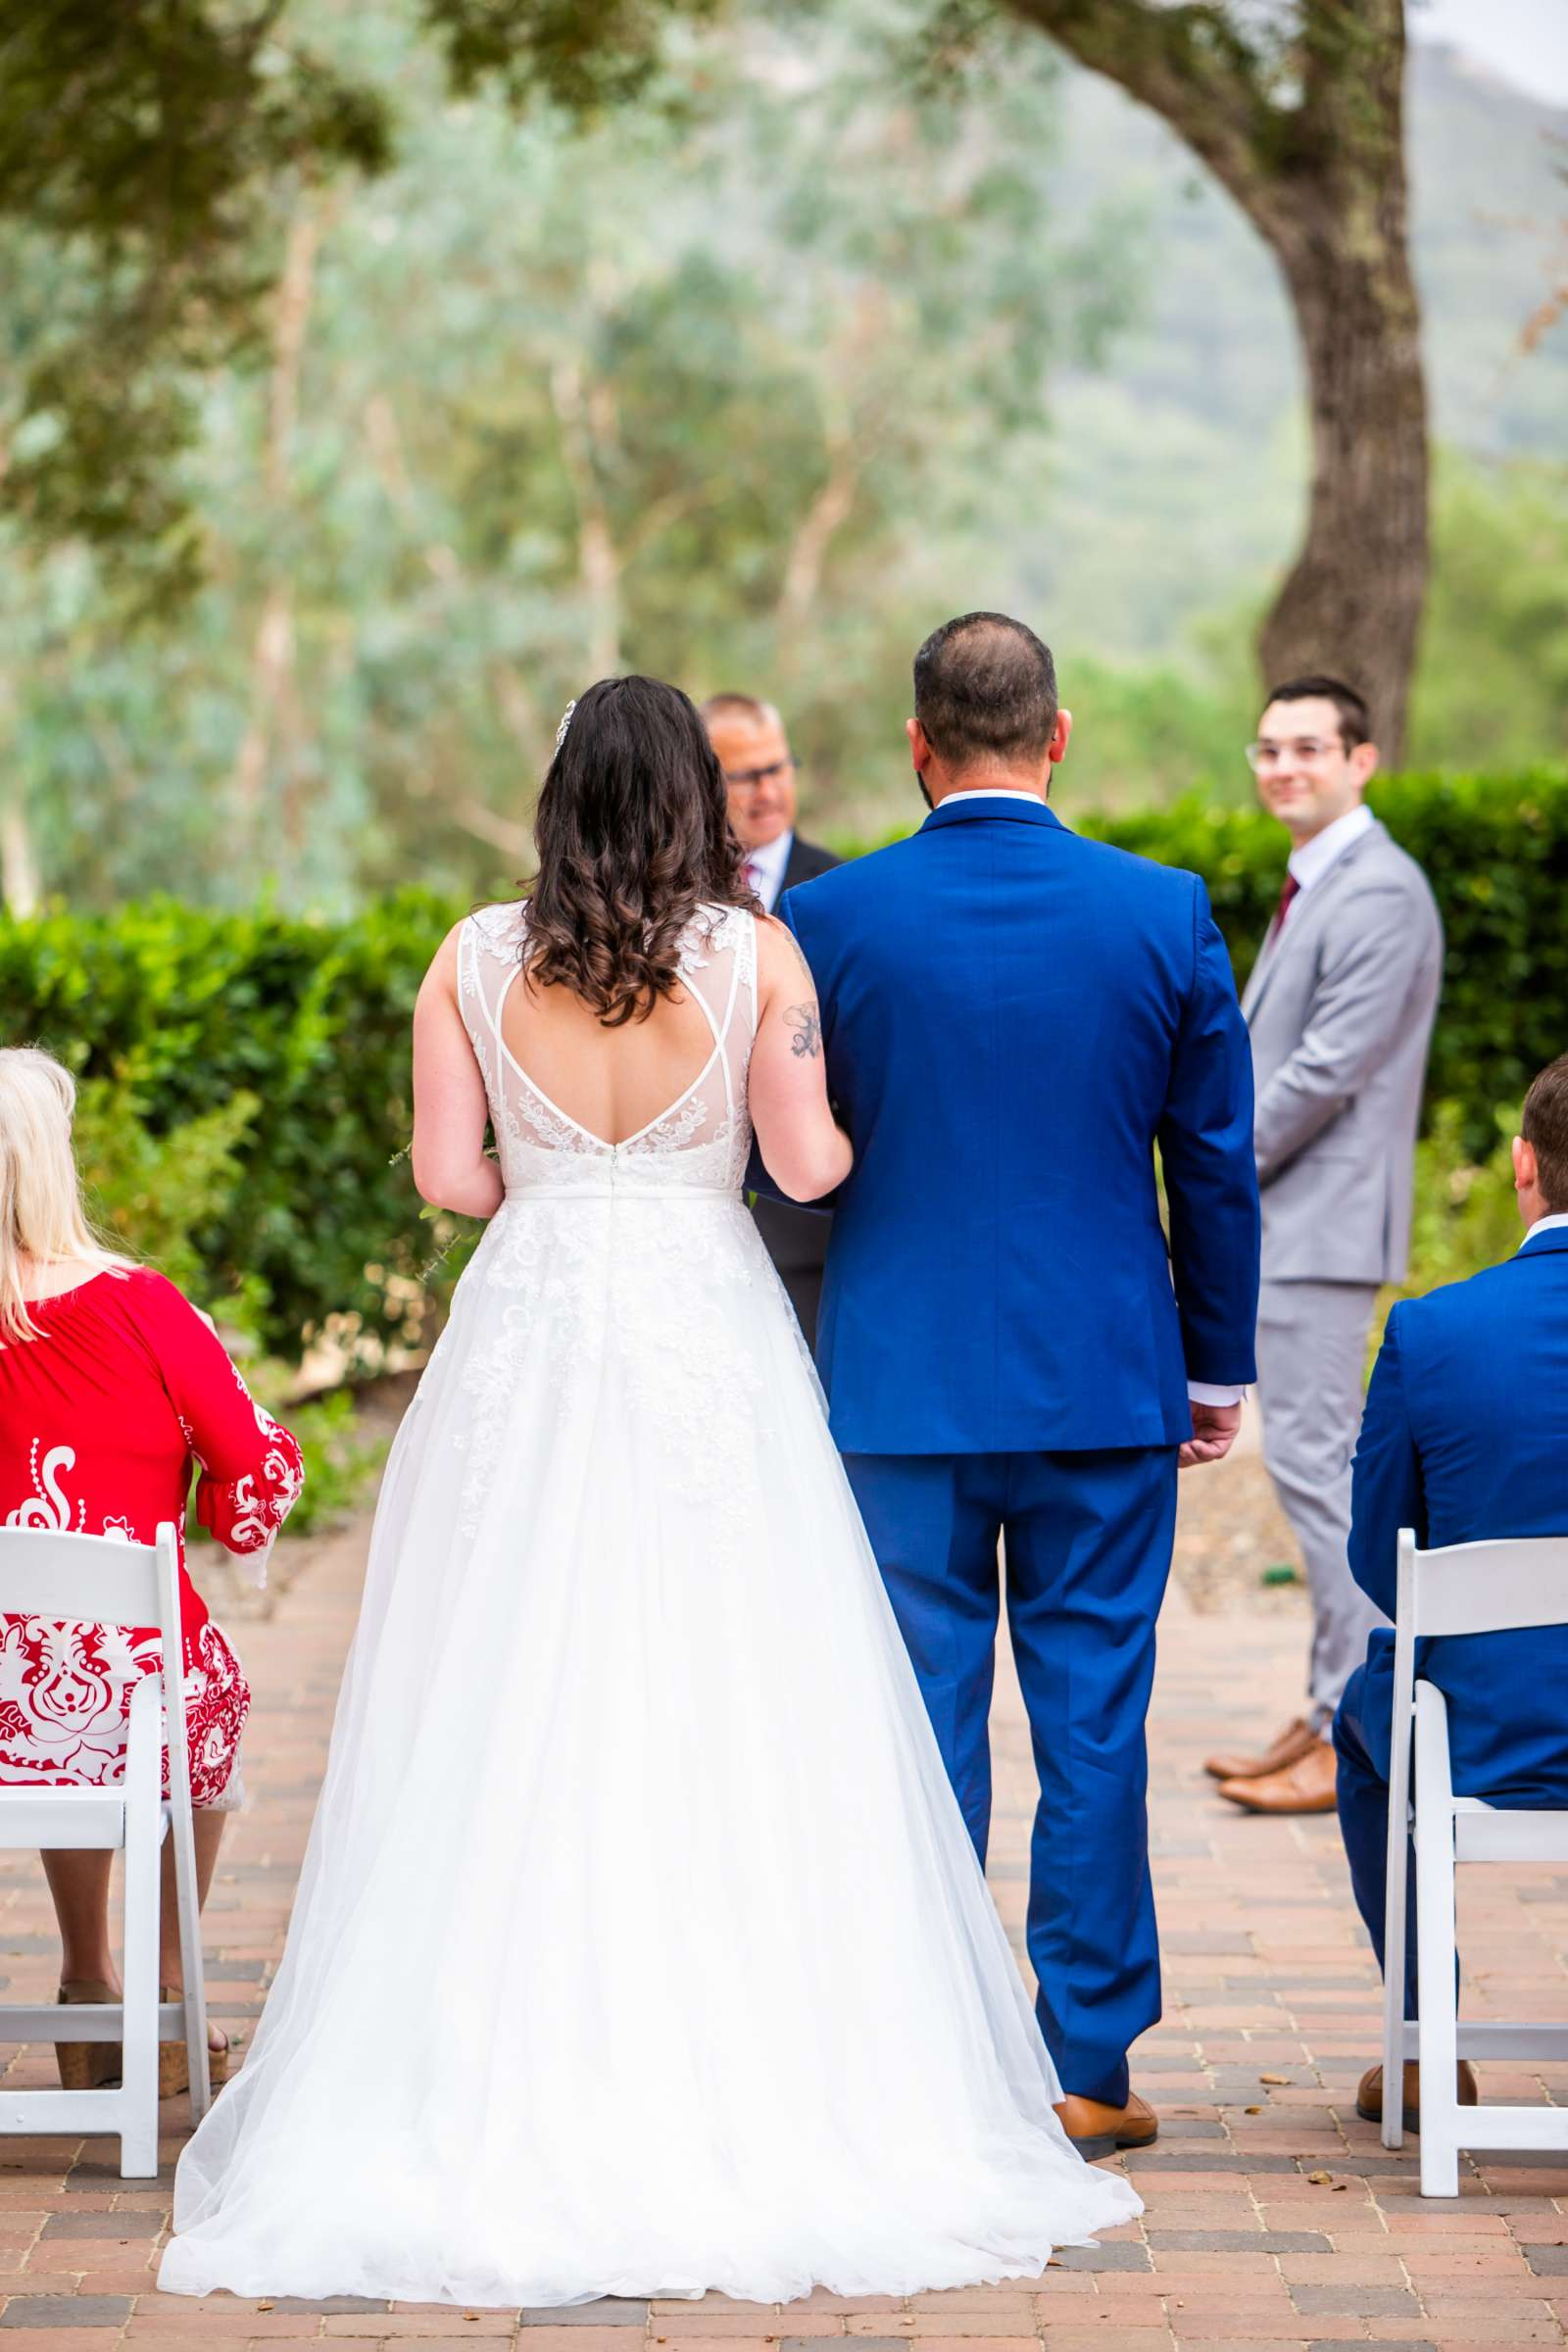 Mt Woodson Castle Wedding, Valerie and Ian Wedding Photo #59 by True Photography